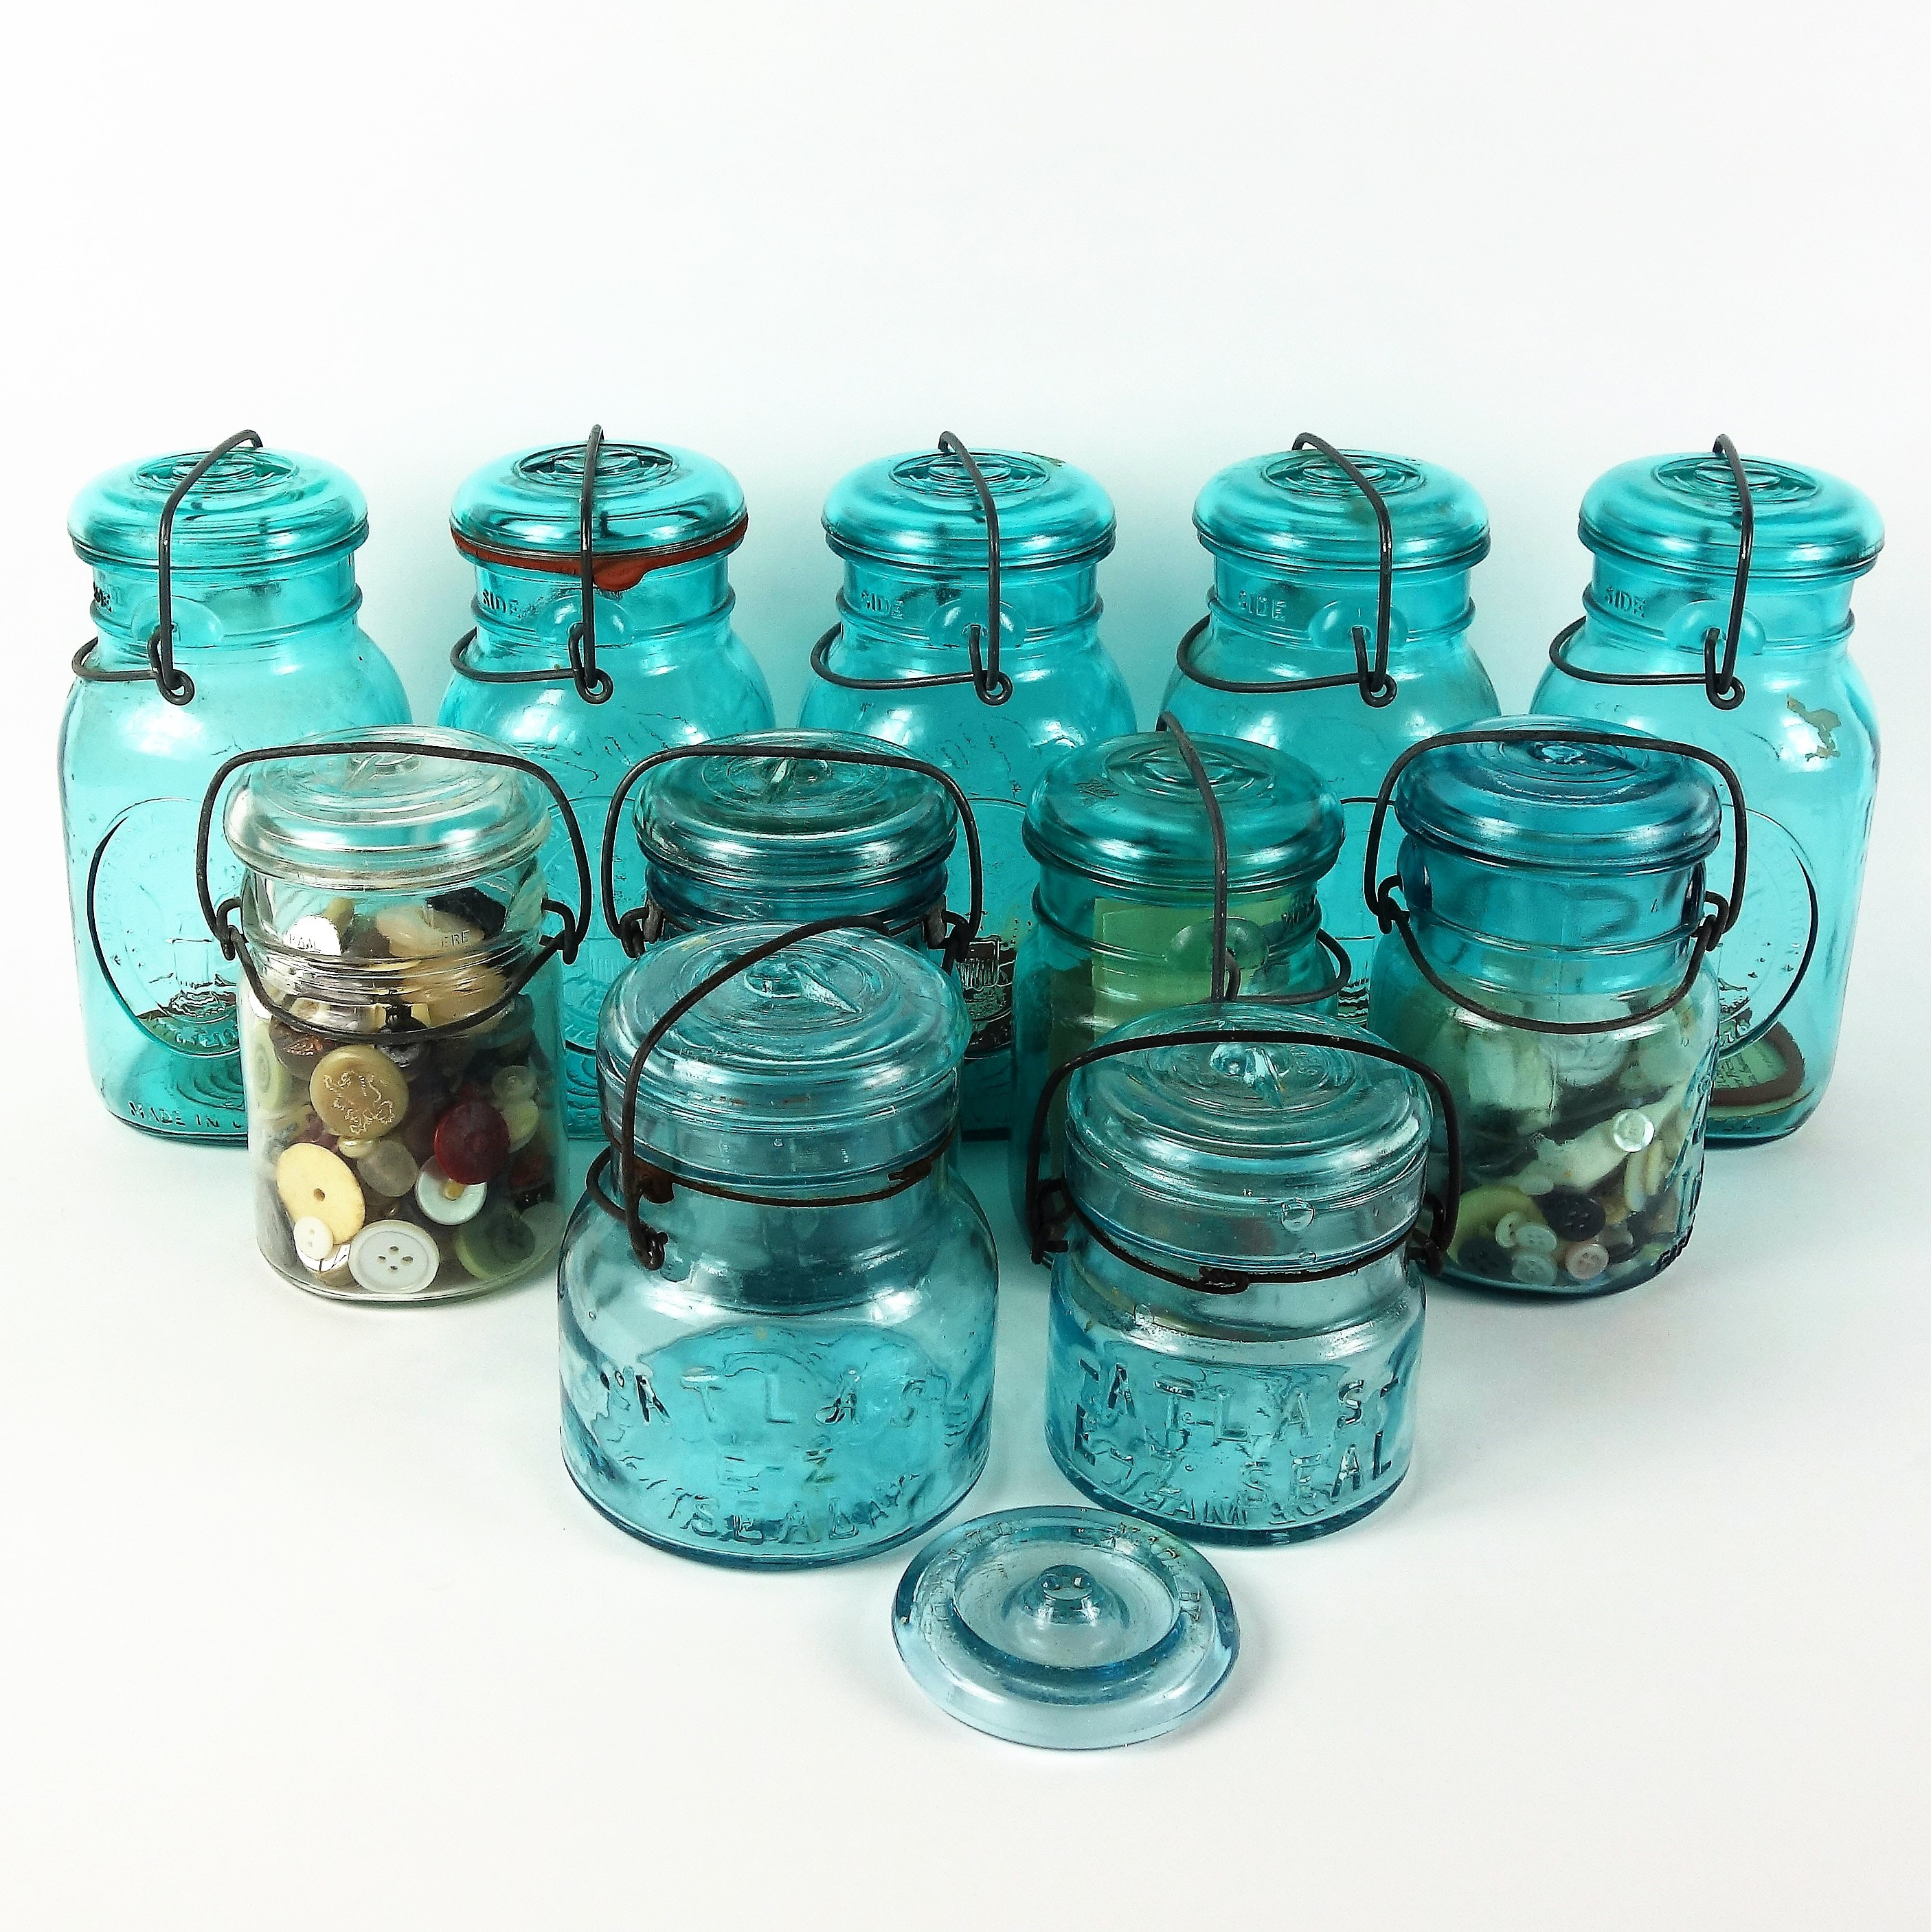 Collection of Blue Ball Mason and Atlas Canning Jars